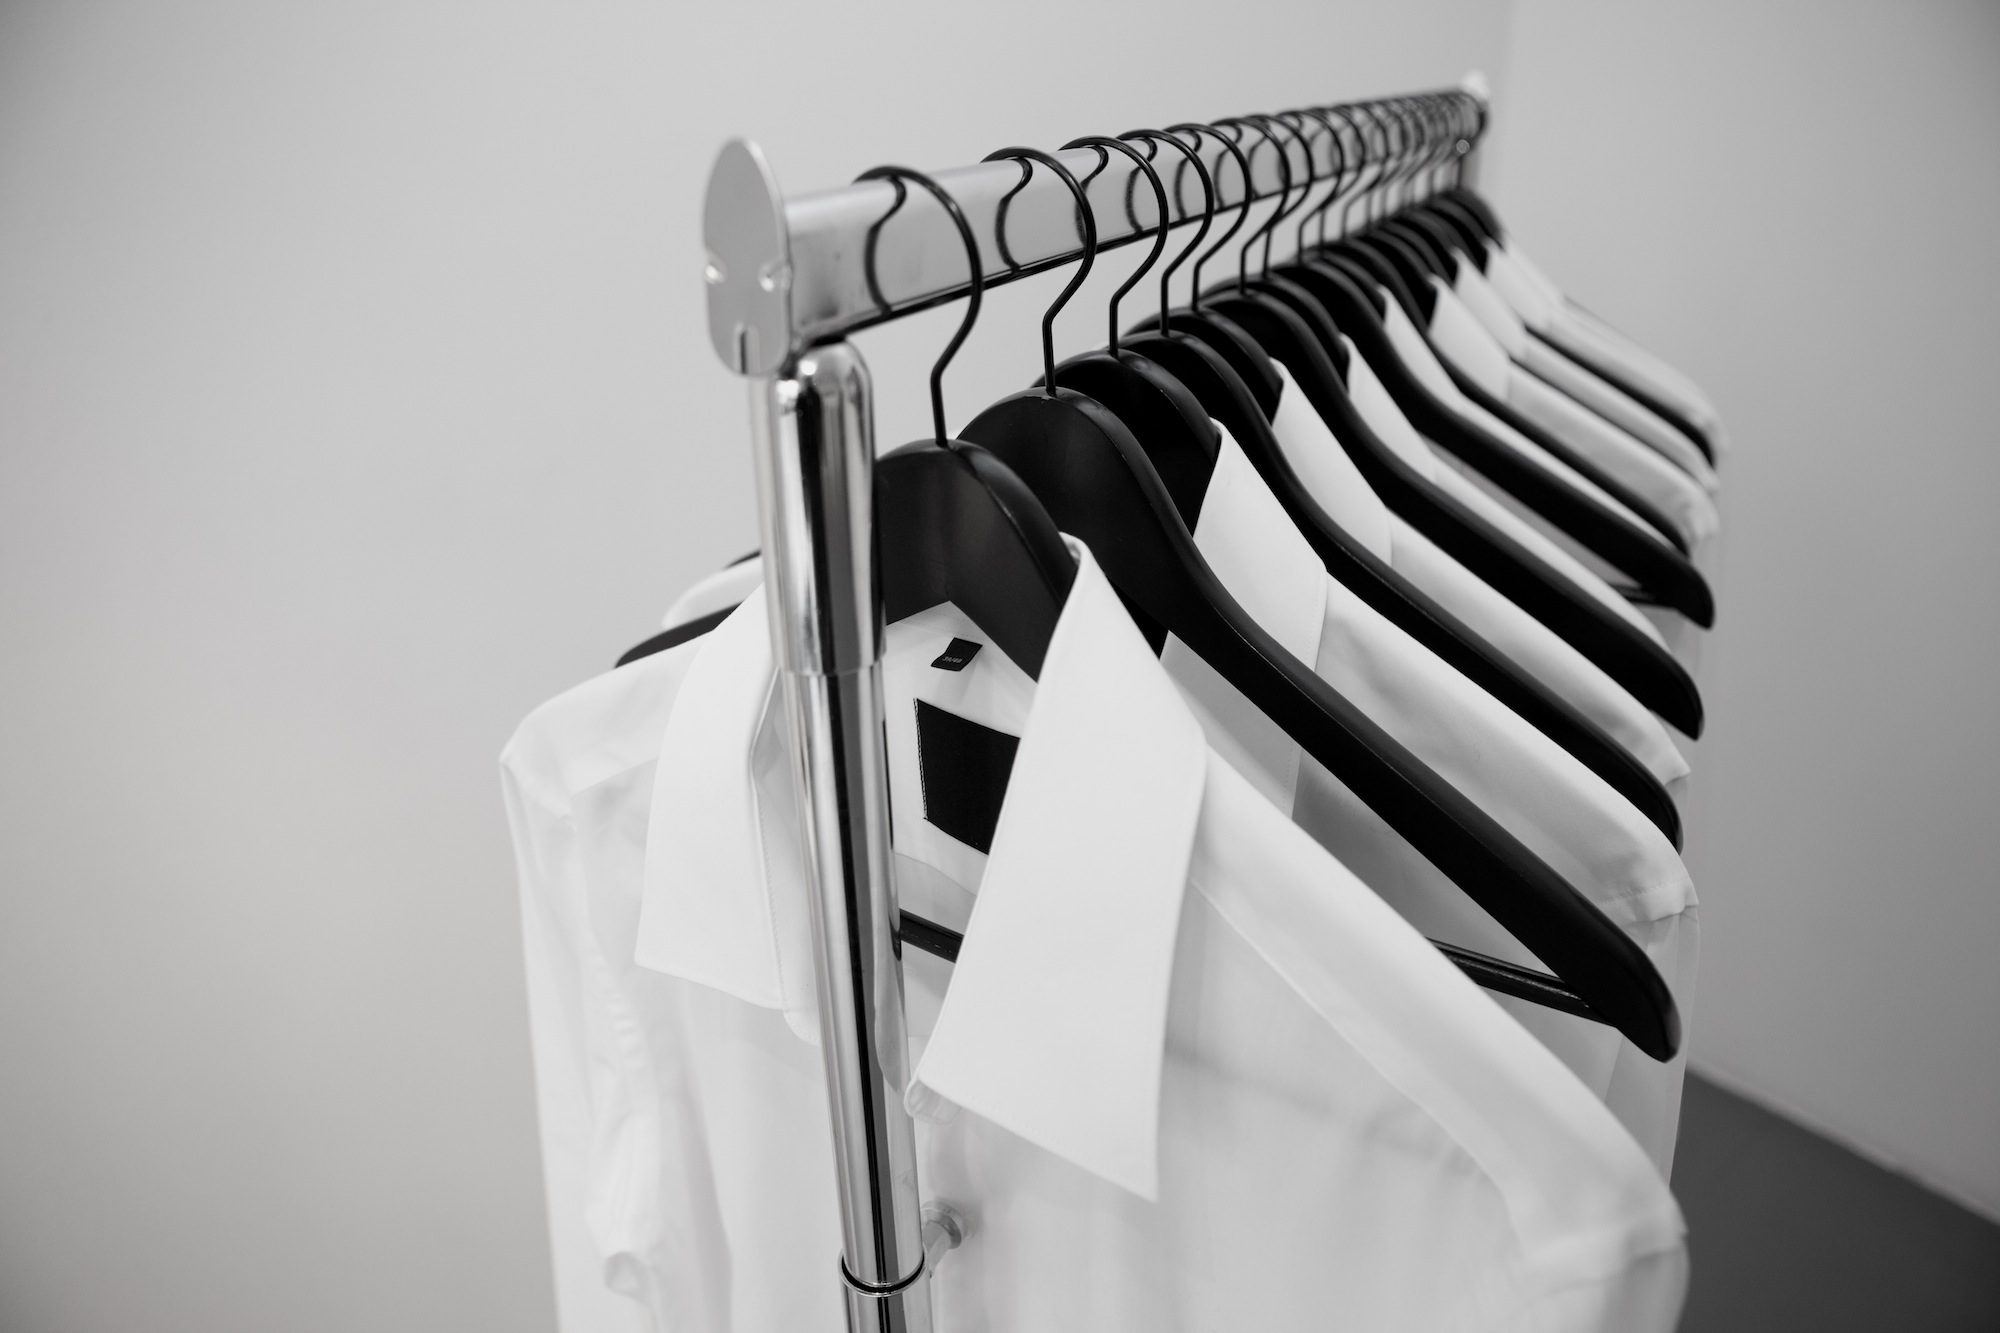 Niklas Goldbach  Self-Titled 2012 Cloth rack, white shirts, black trousers 152 x 125 x 66 cm Edition 3 + 1 AP